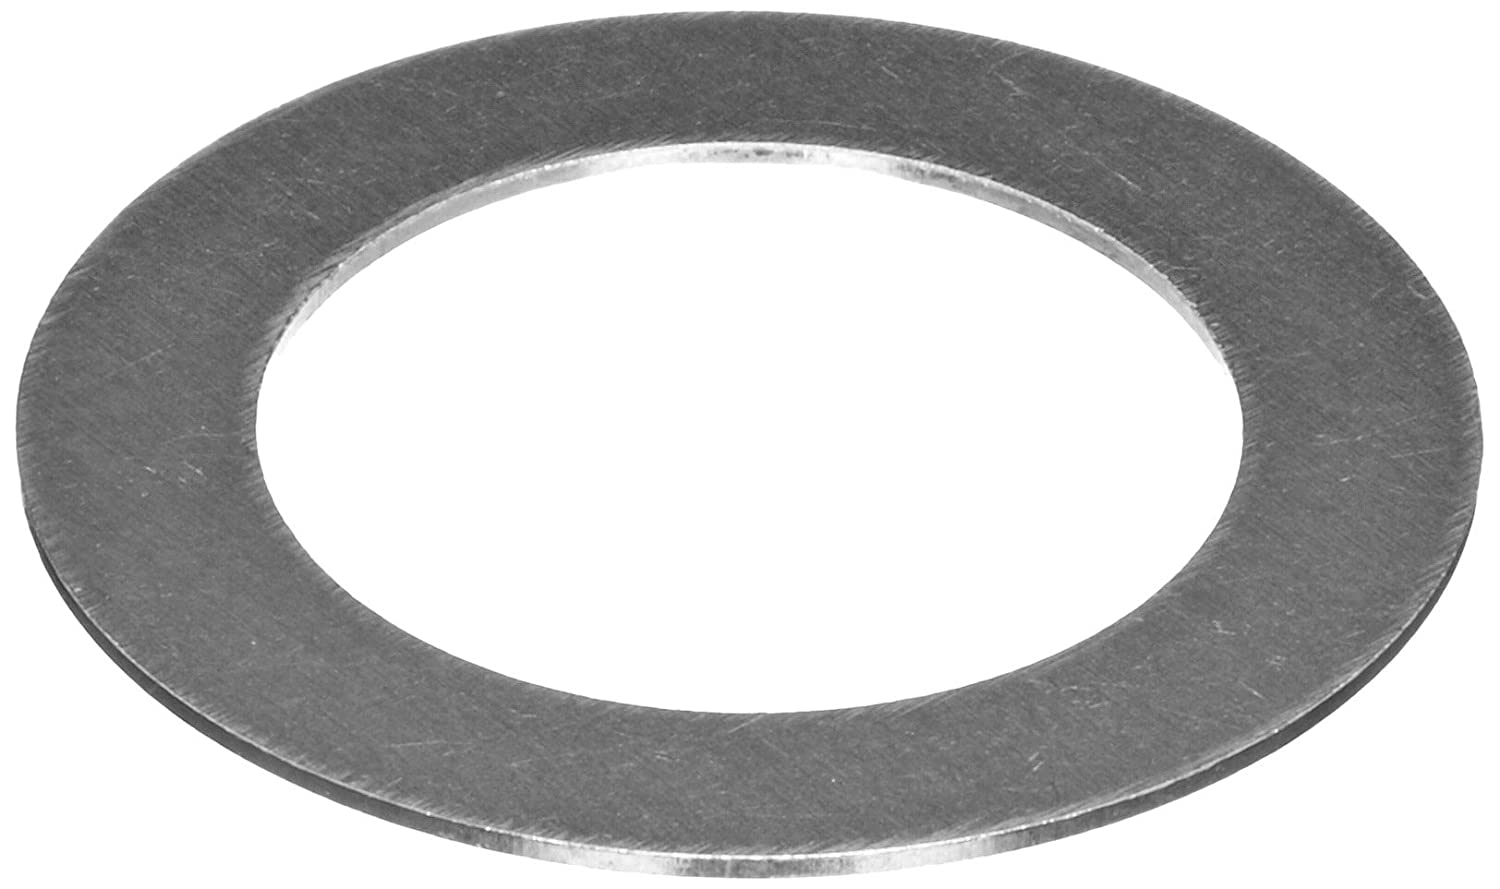 18-8 Stainless Steel Round Shim, Unpolished (Mill) Finish, Annealed, Hard Temper, ASTM A666, 0.010' Thickness, 0.501' ID, 0.750' OD (Pack of 50) 0.010 Thickness 0.501 ID 0.750 OD (Pack of 50) Small Parts Inc 188SS2712